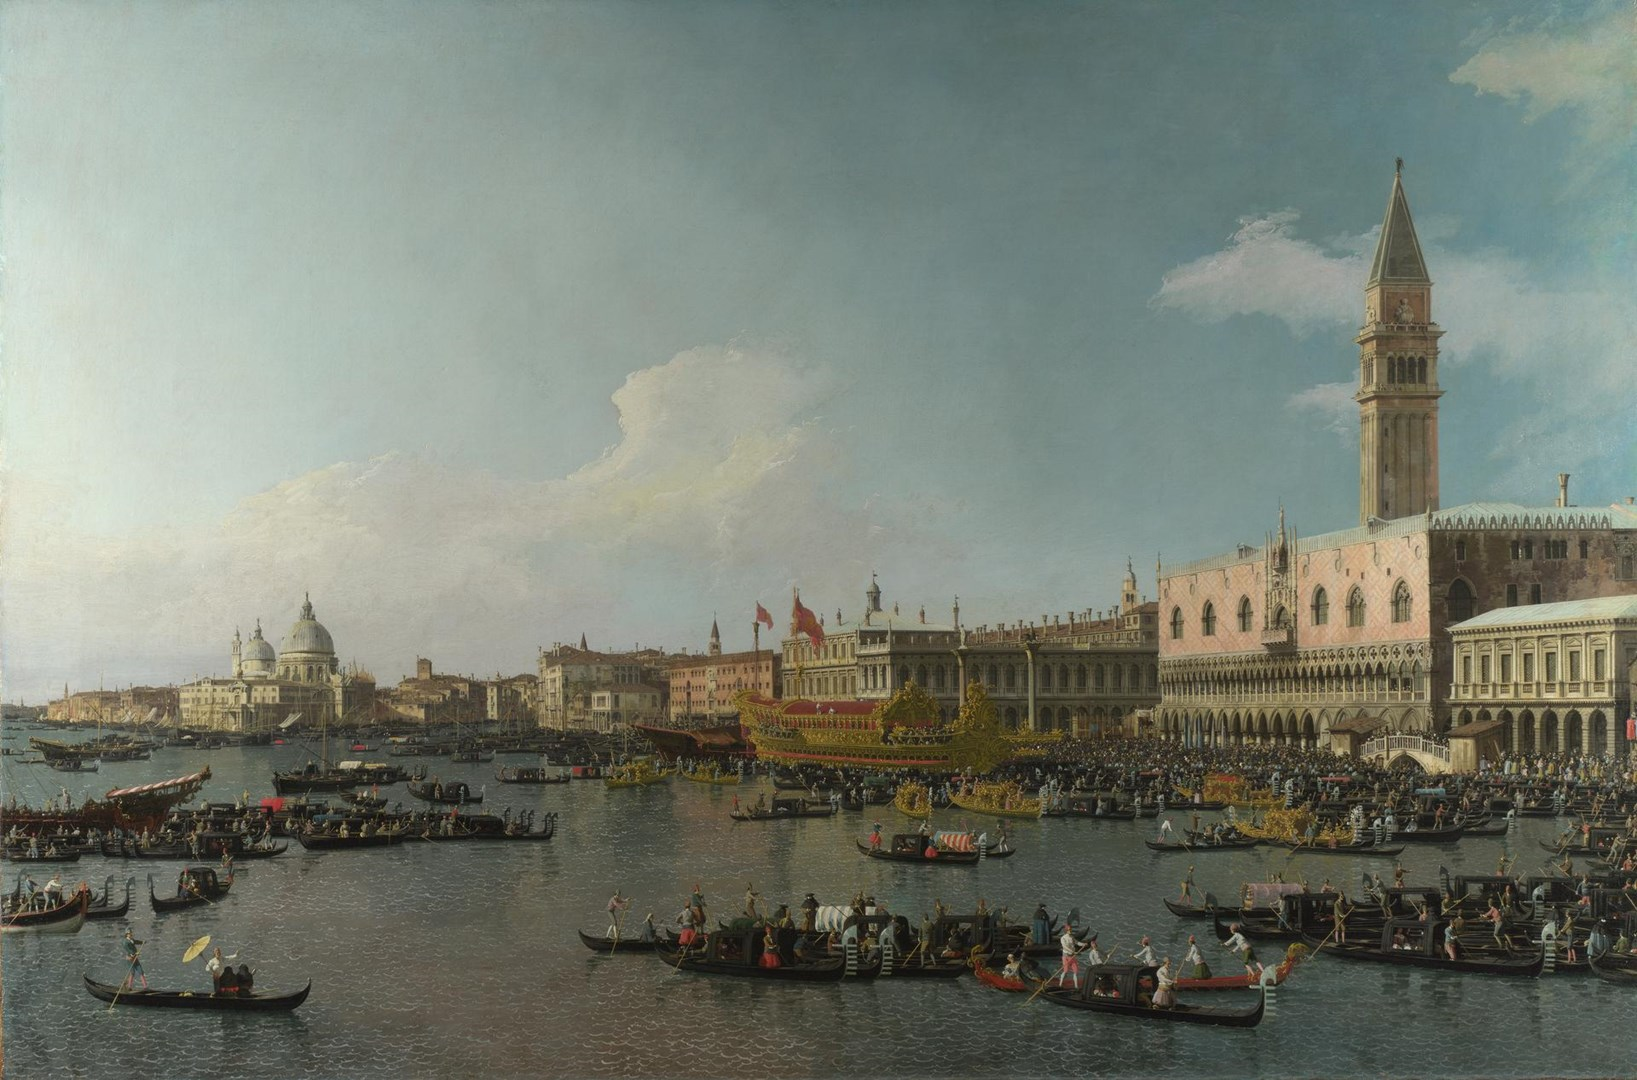 Venice: The Basin of San Marco on Ascension Day by Canaletto